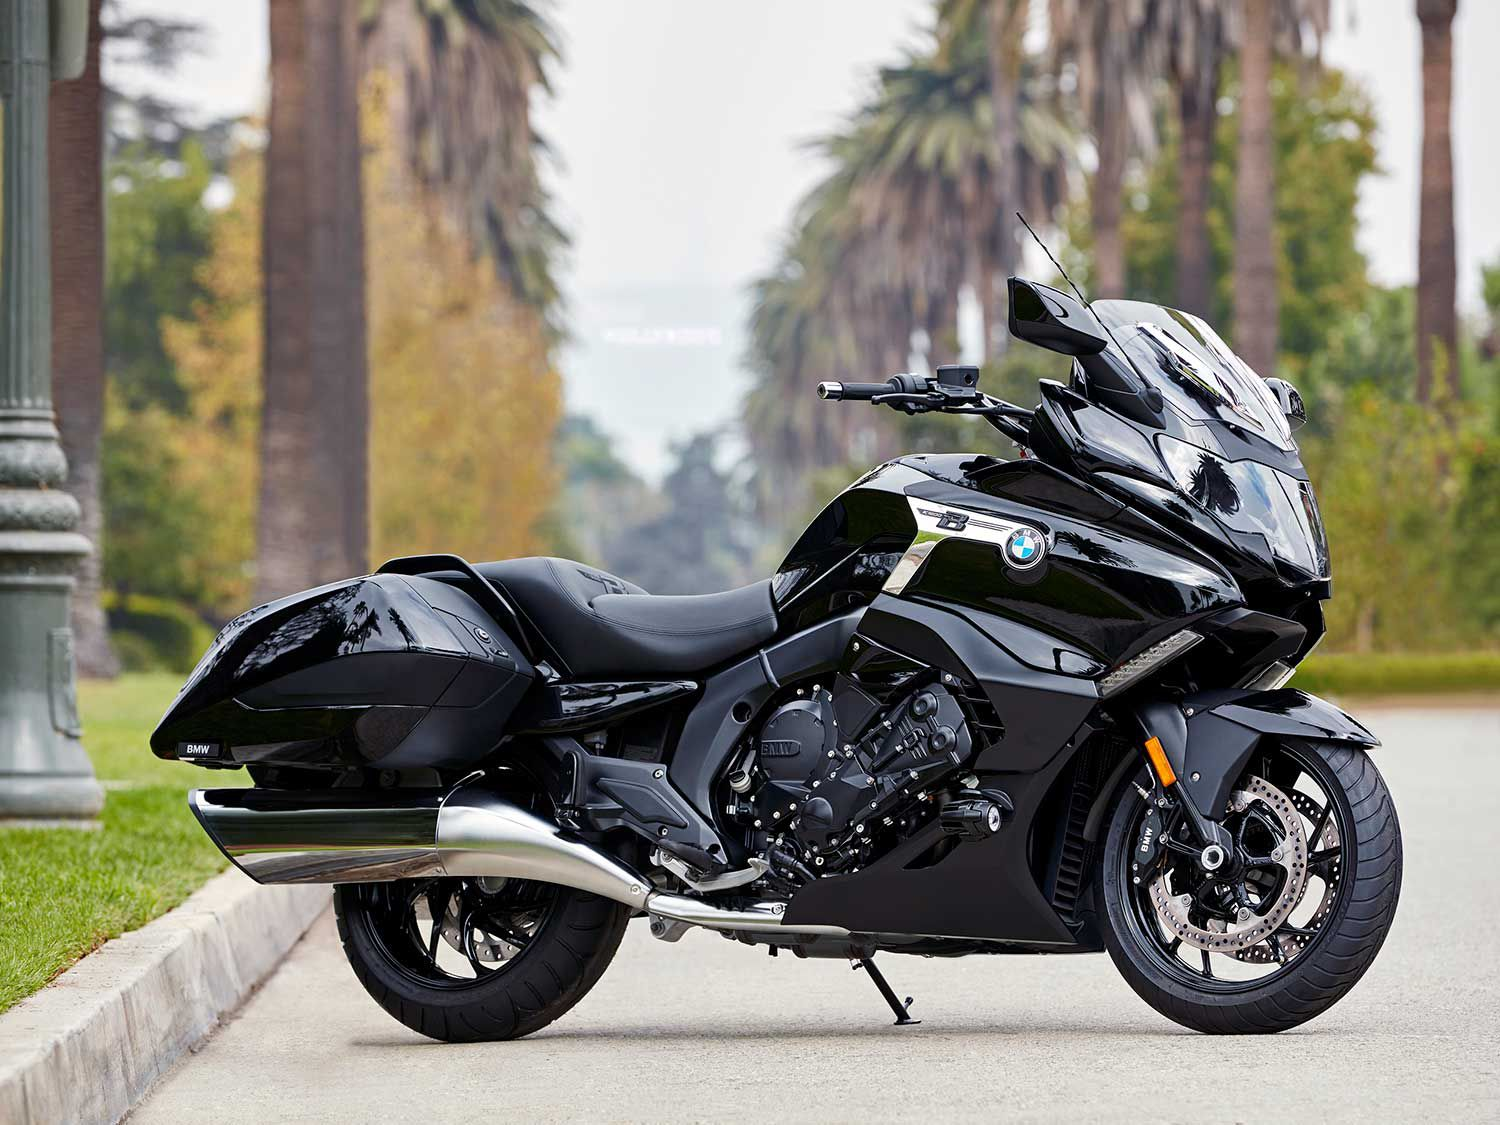 The Most Powerful Cruisers In 2019 | Motorcycle Cruiser